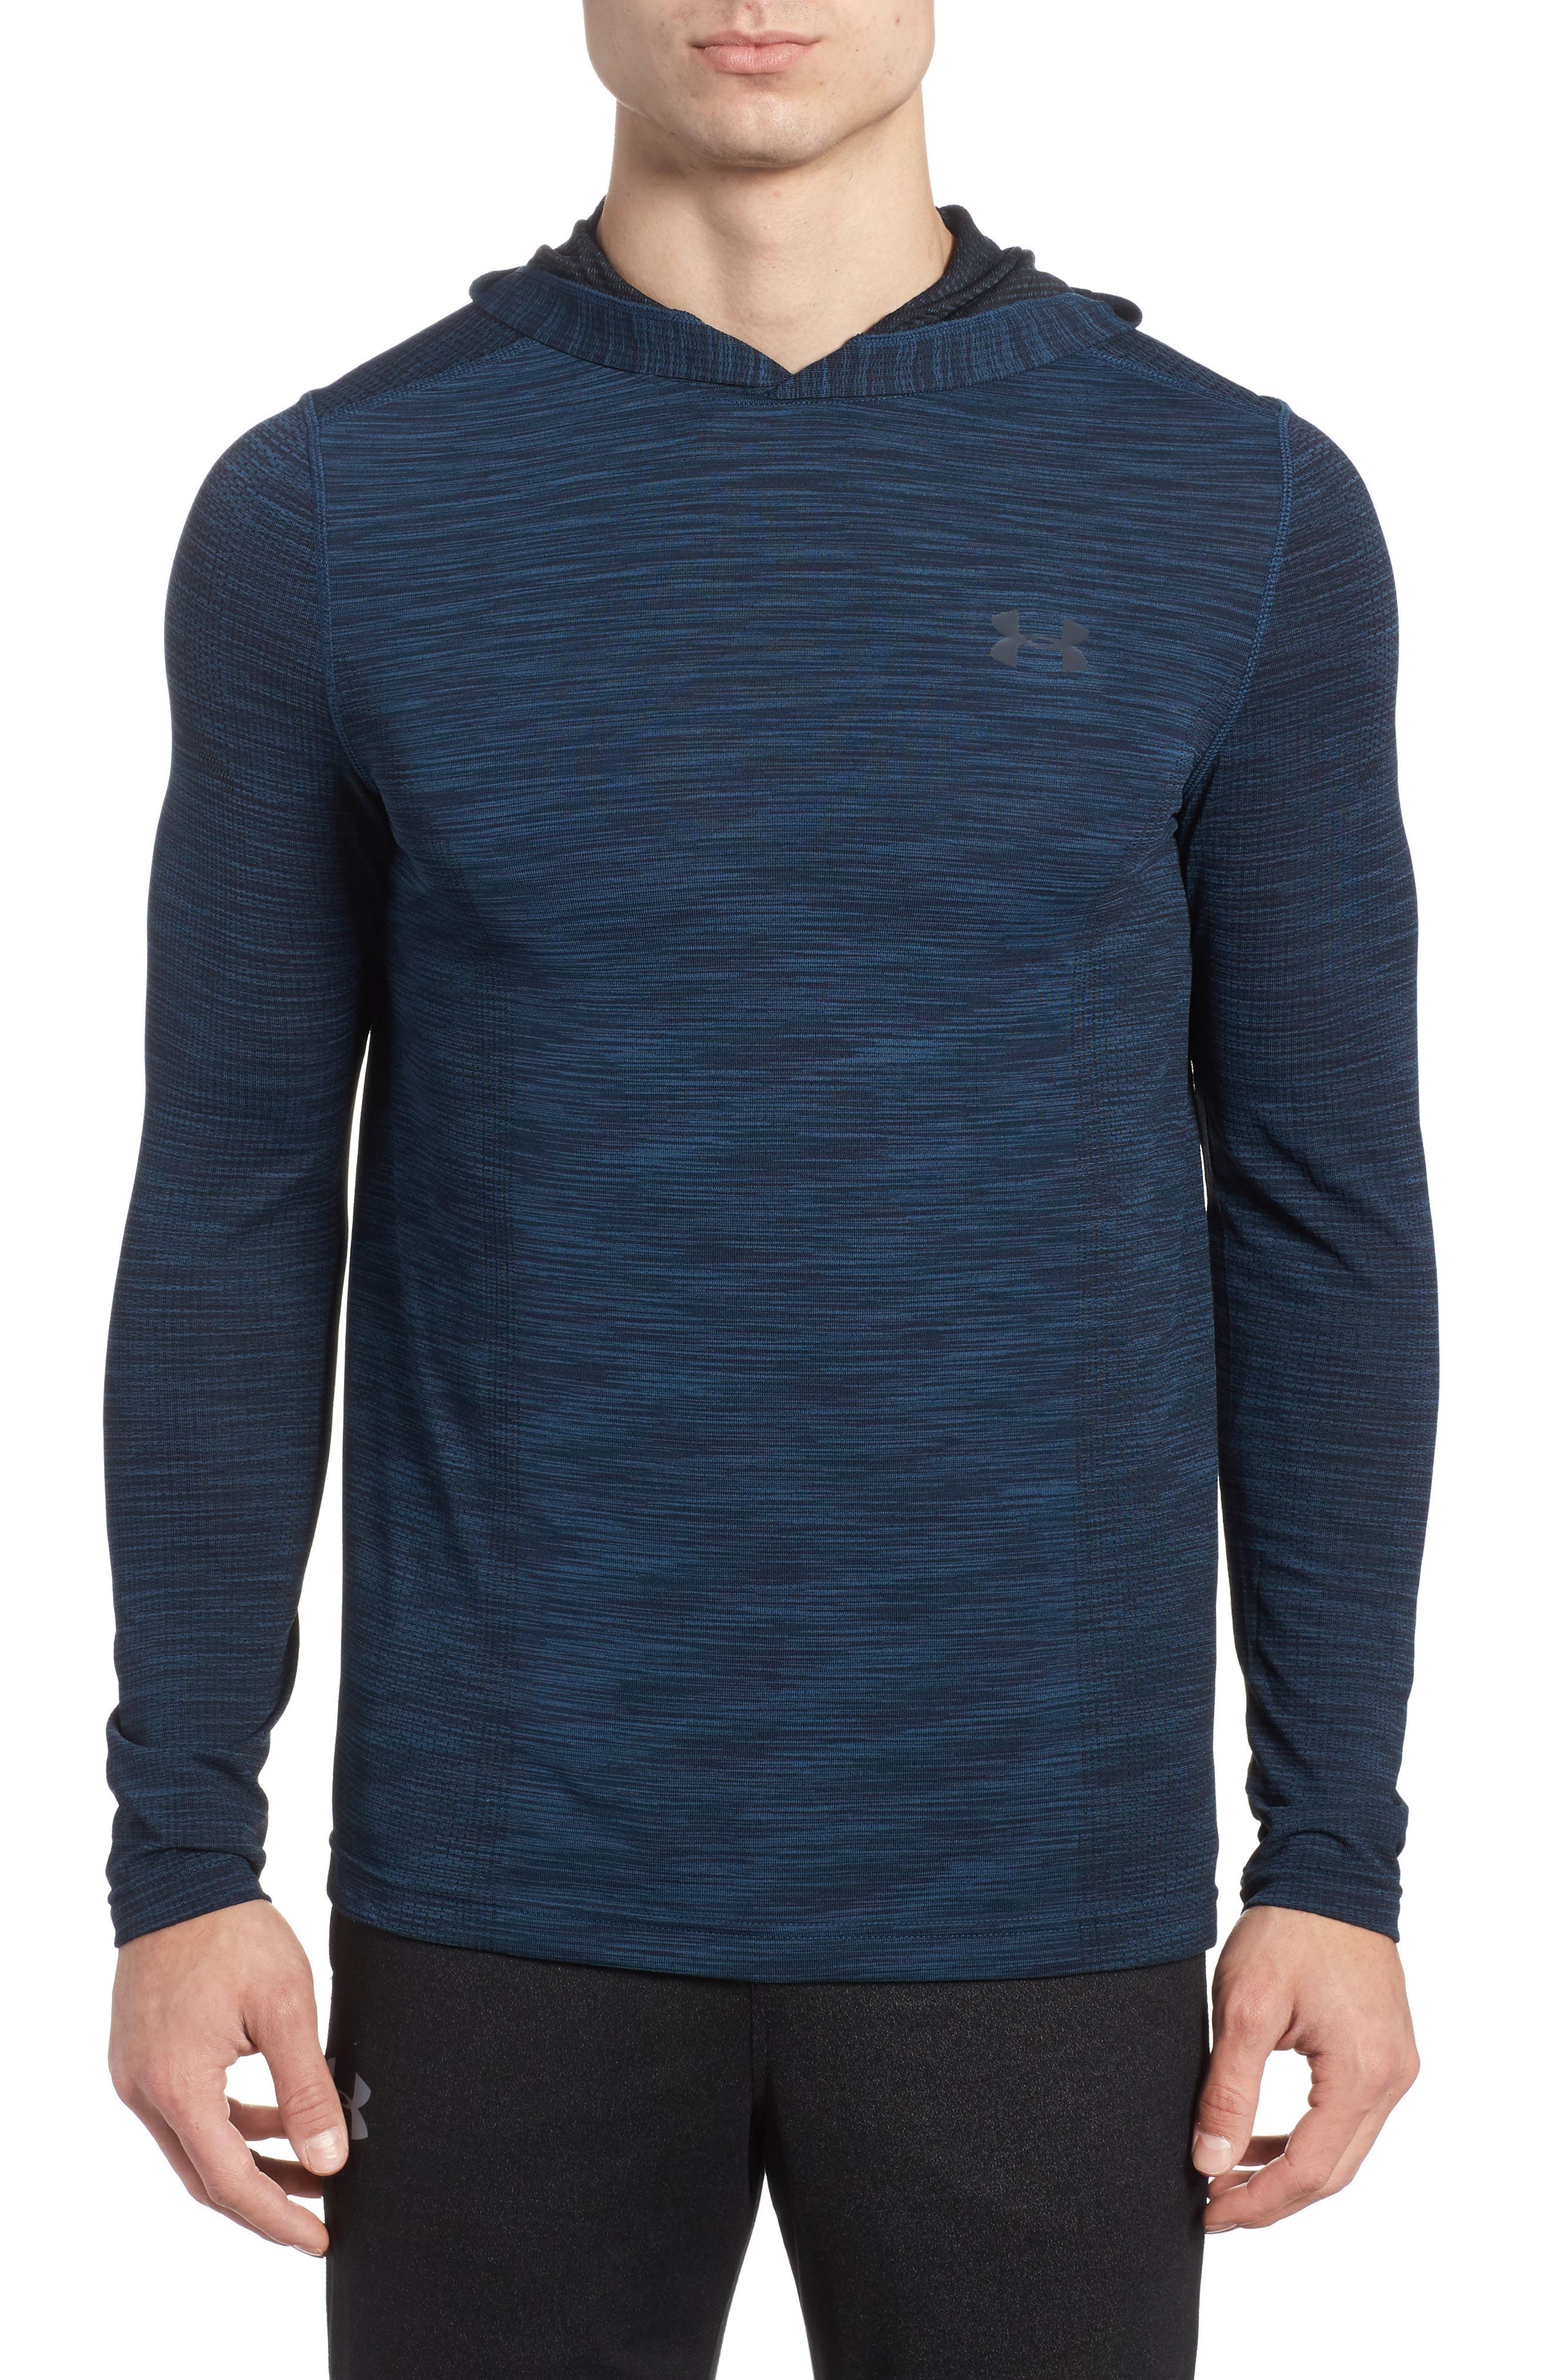 Threadbone Fitted Seamless Hoodie,                             Main thumbnail 1, color,                             True Ink/ Anthracite